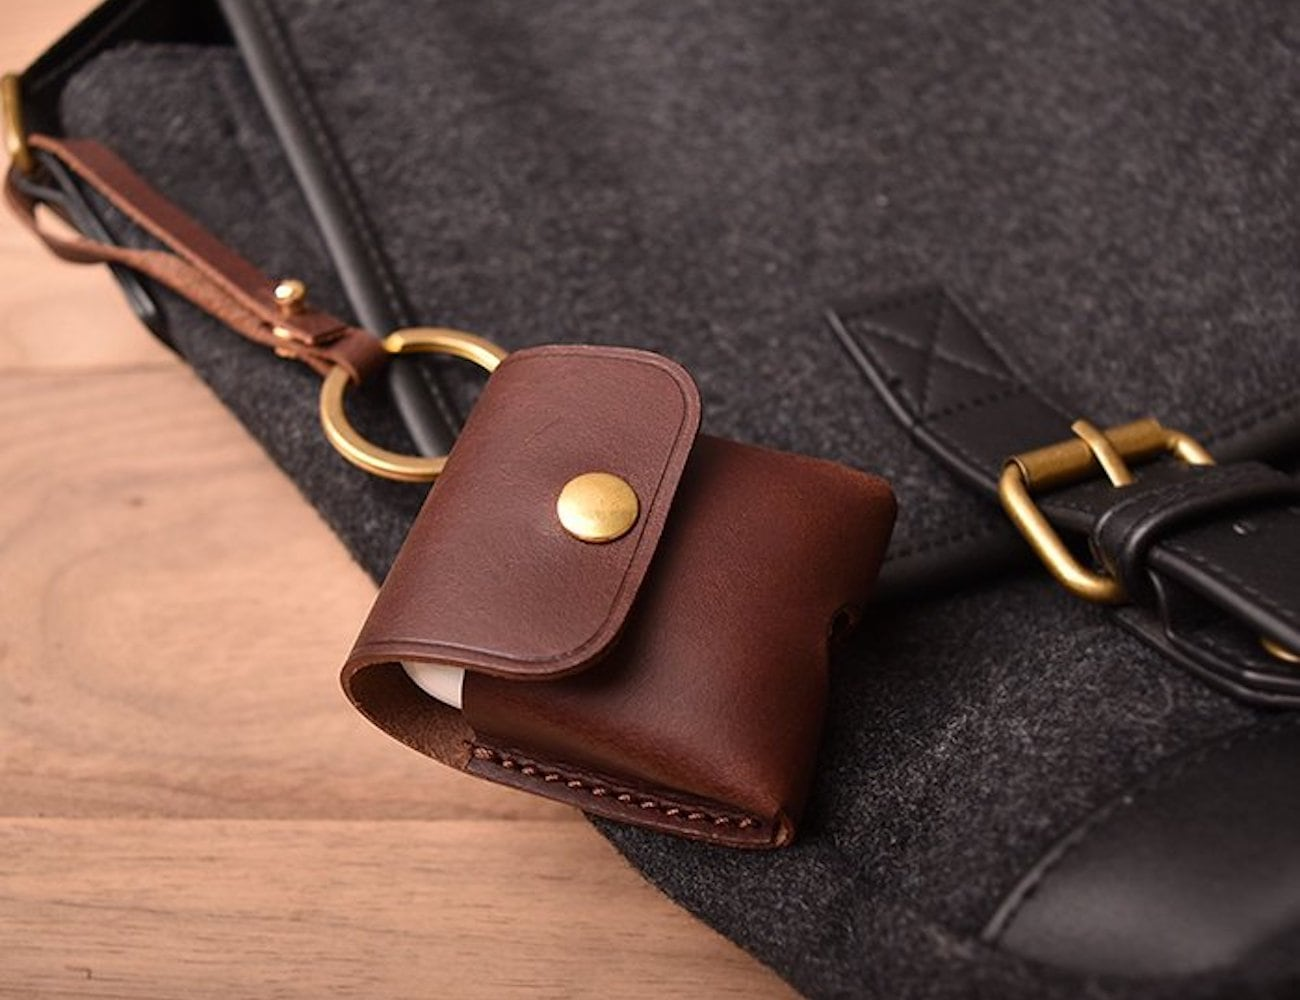 Beltto Leather AirPods Pouch